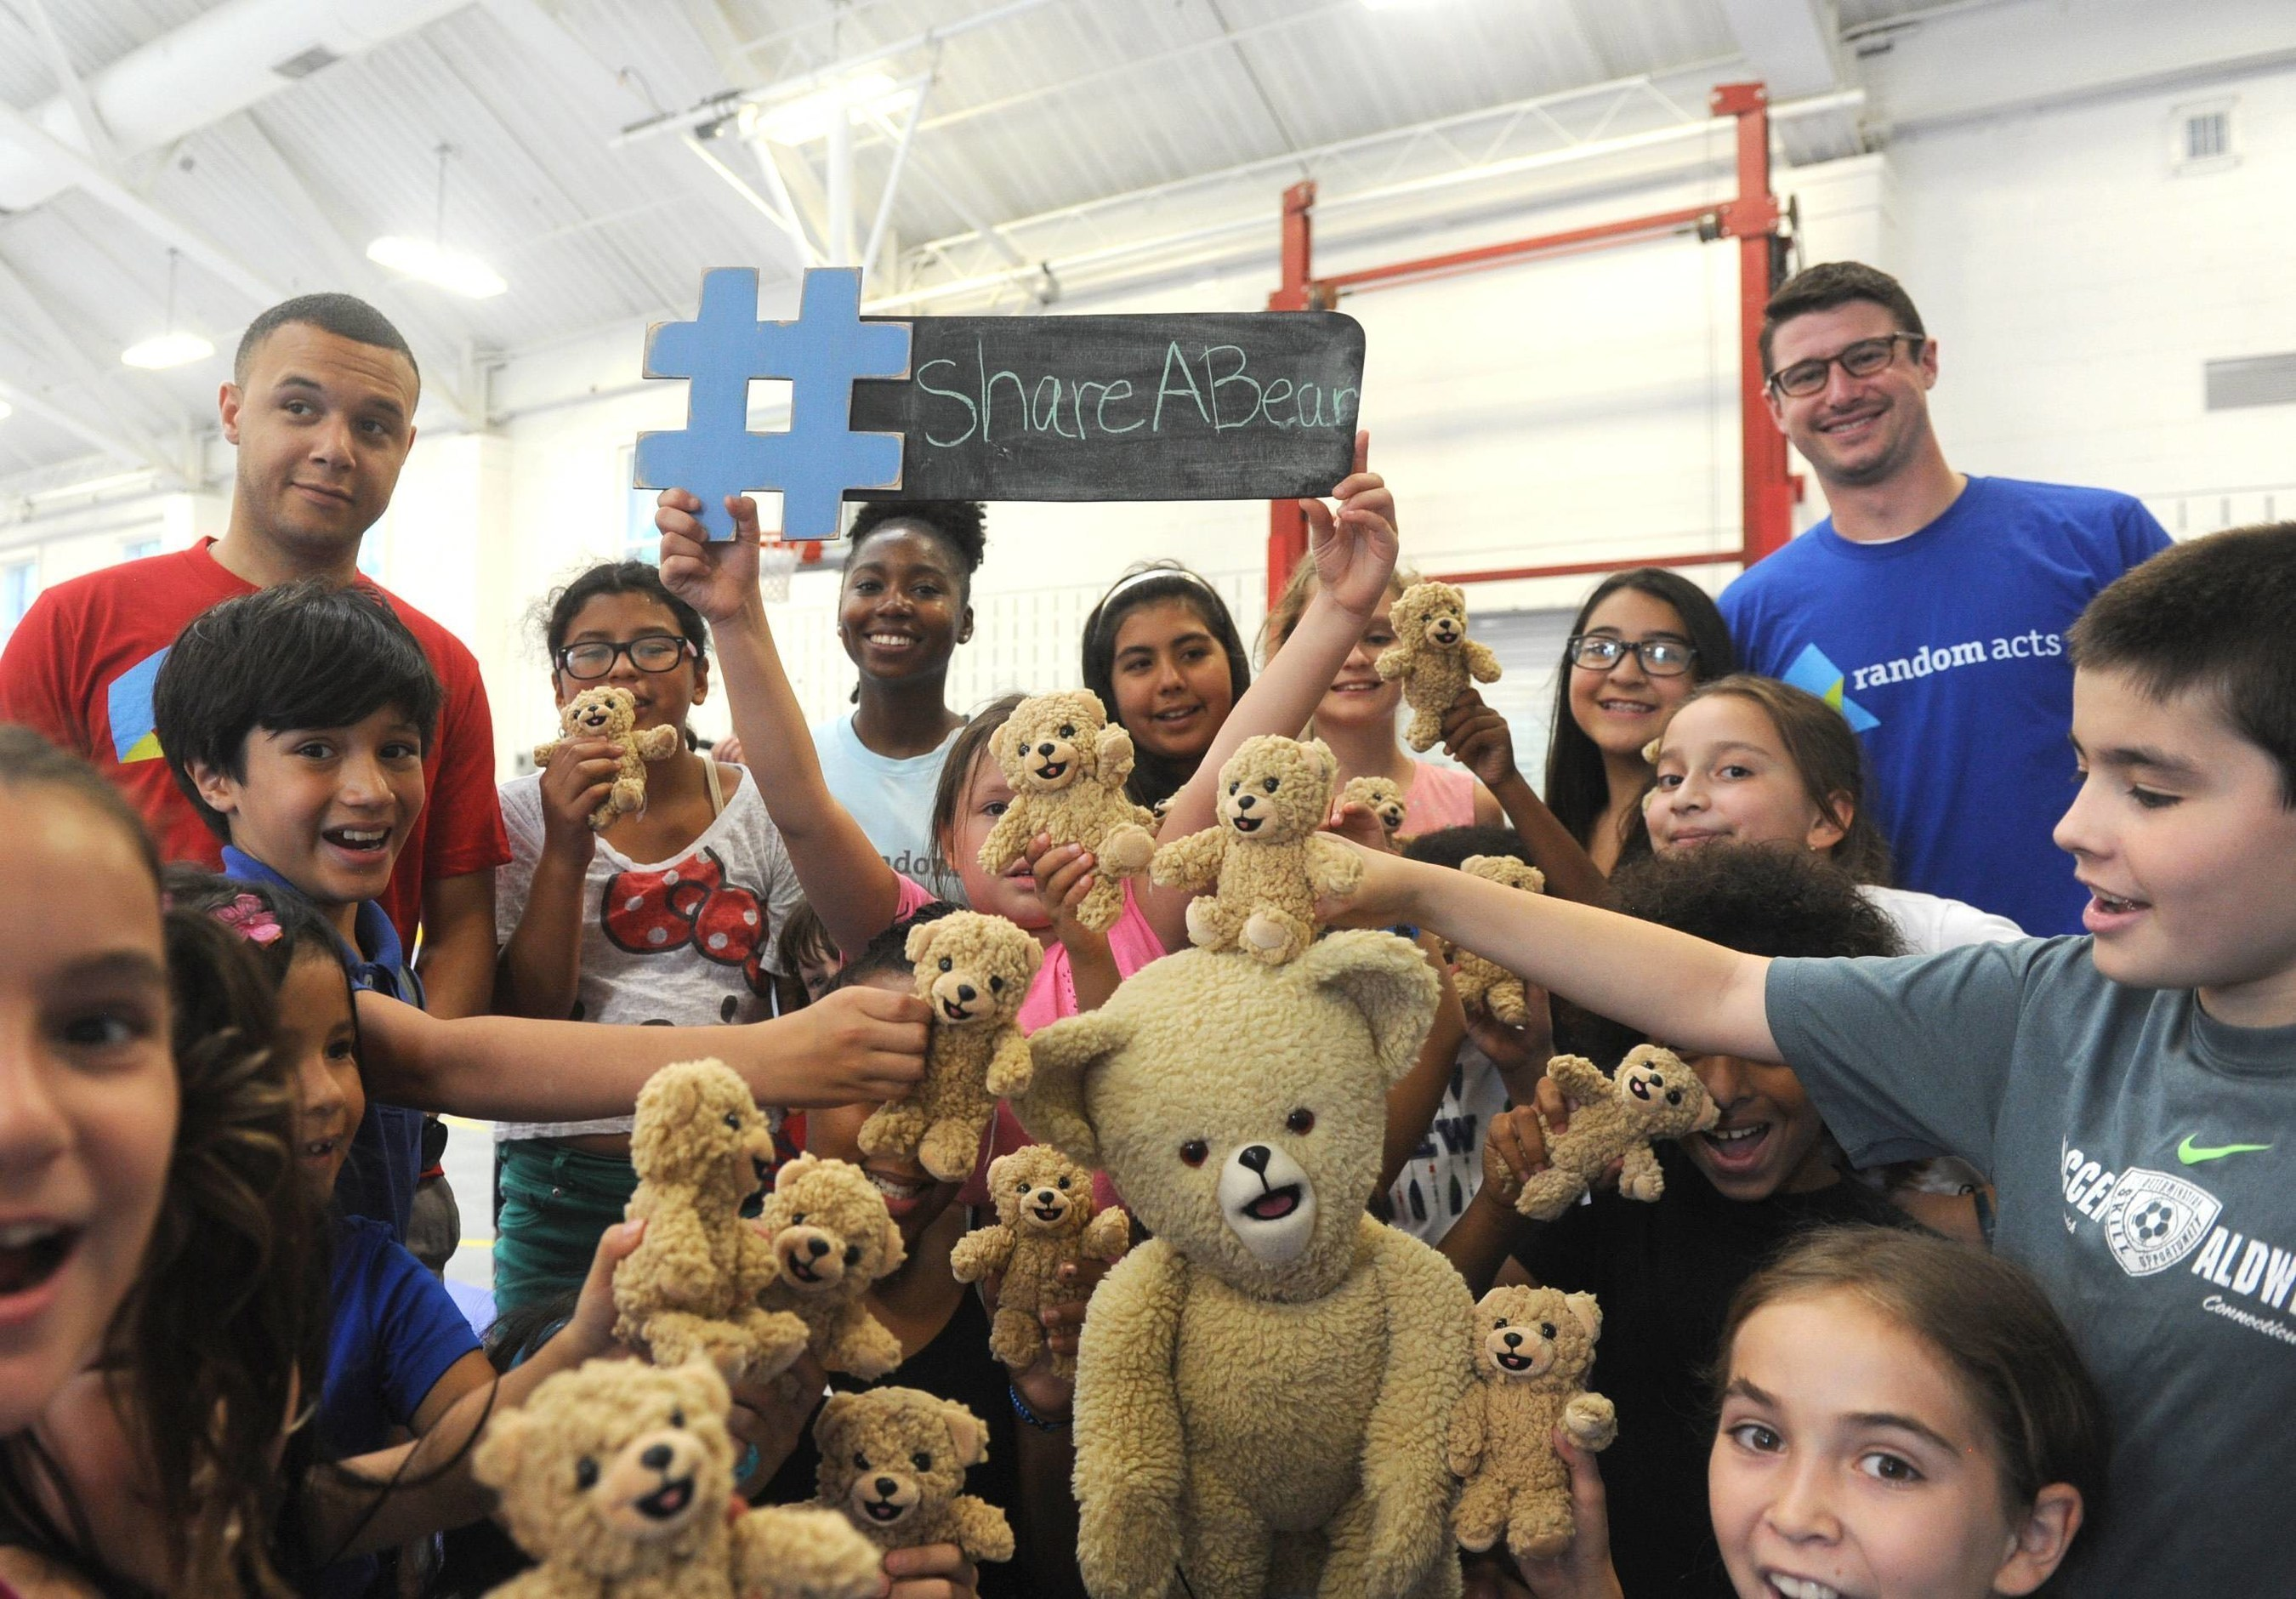 As part of the Snuggle #ShareABear campaign and to celebrate National Teddy Bear Day (Sept. 9), Snuggle Bear with Random Acts, a non-profit organization, will be giving 5,000 teddy bears to kids in need.